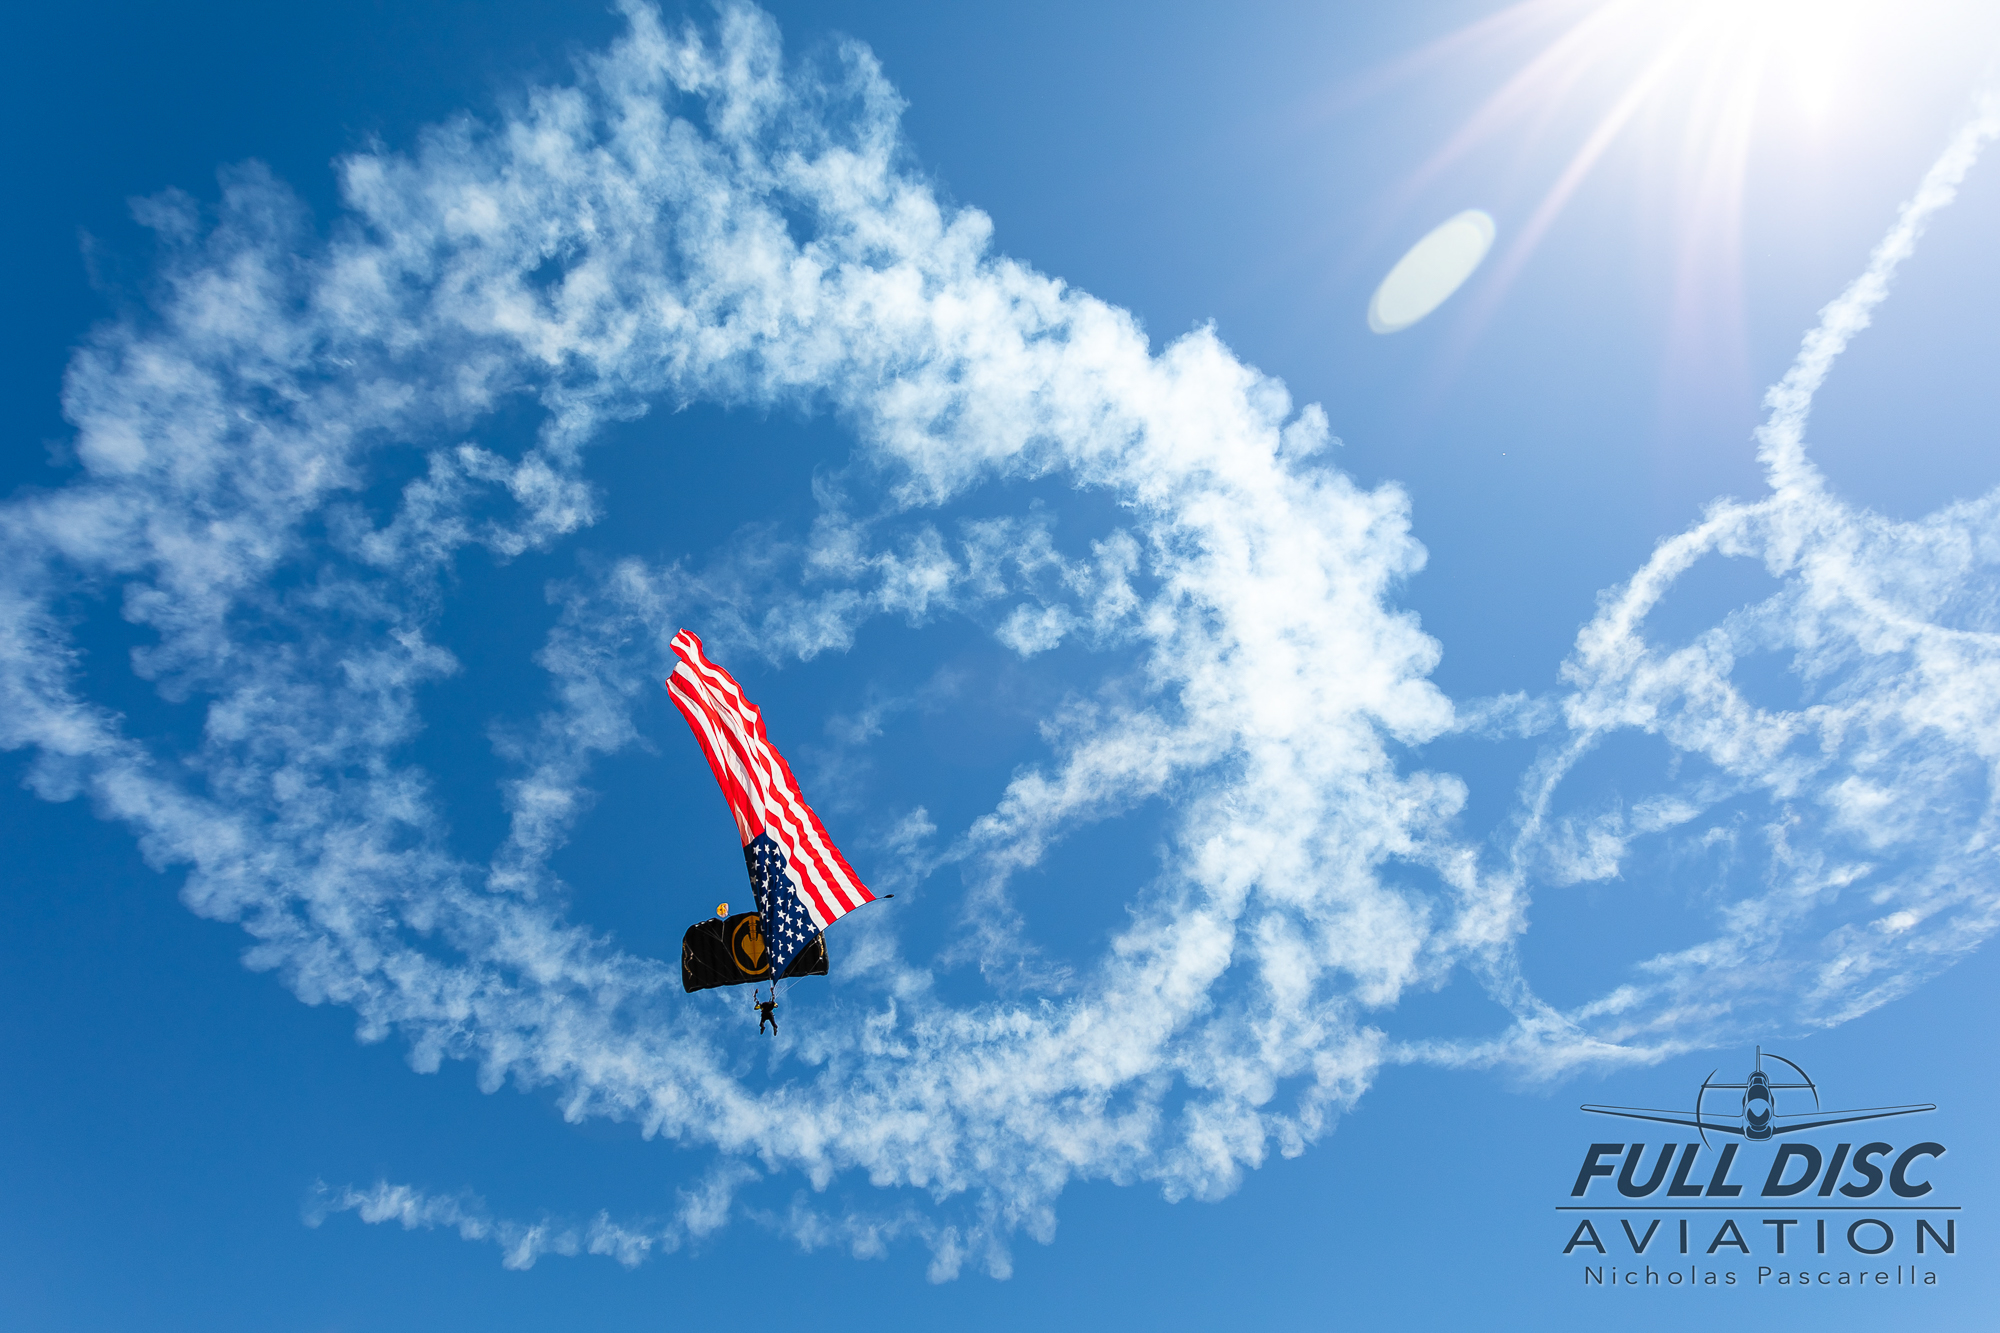 skydivers_flag_usnavyblueangels_nicholaspascarella_fulldiscavation_aviation_airshow.jpg